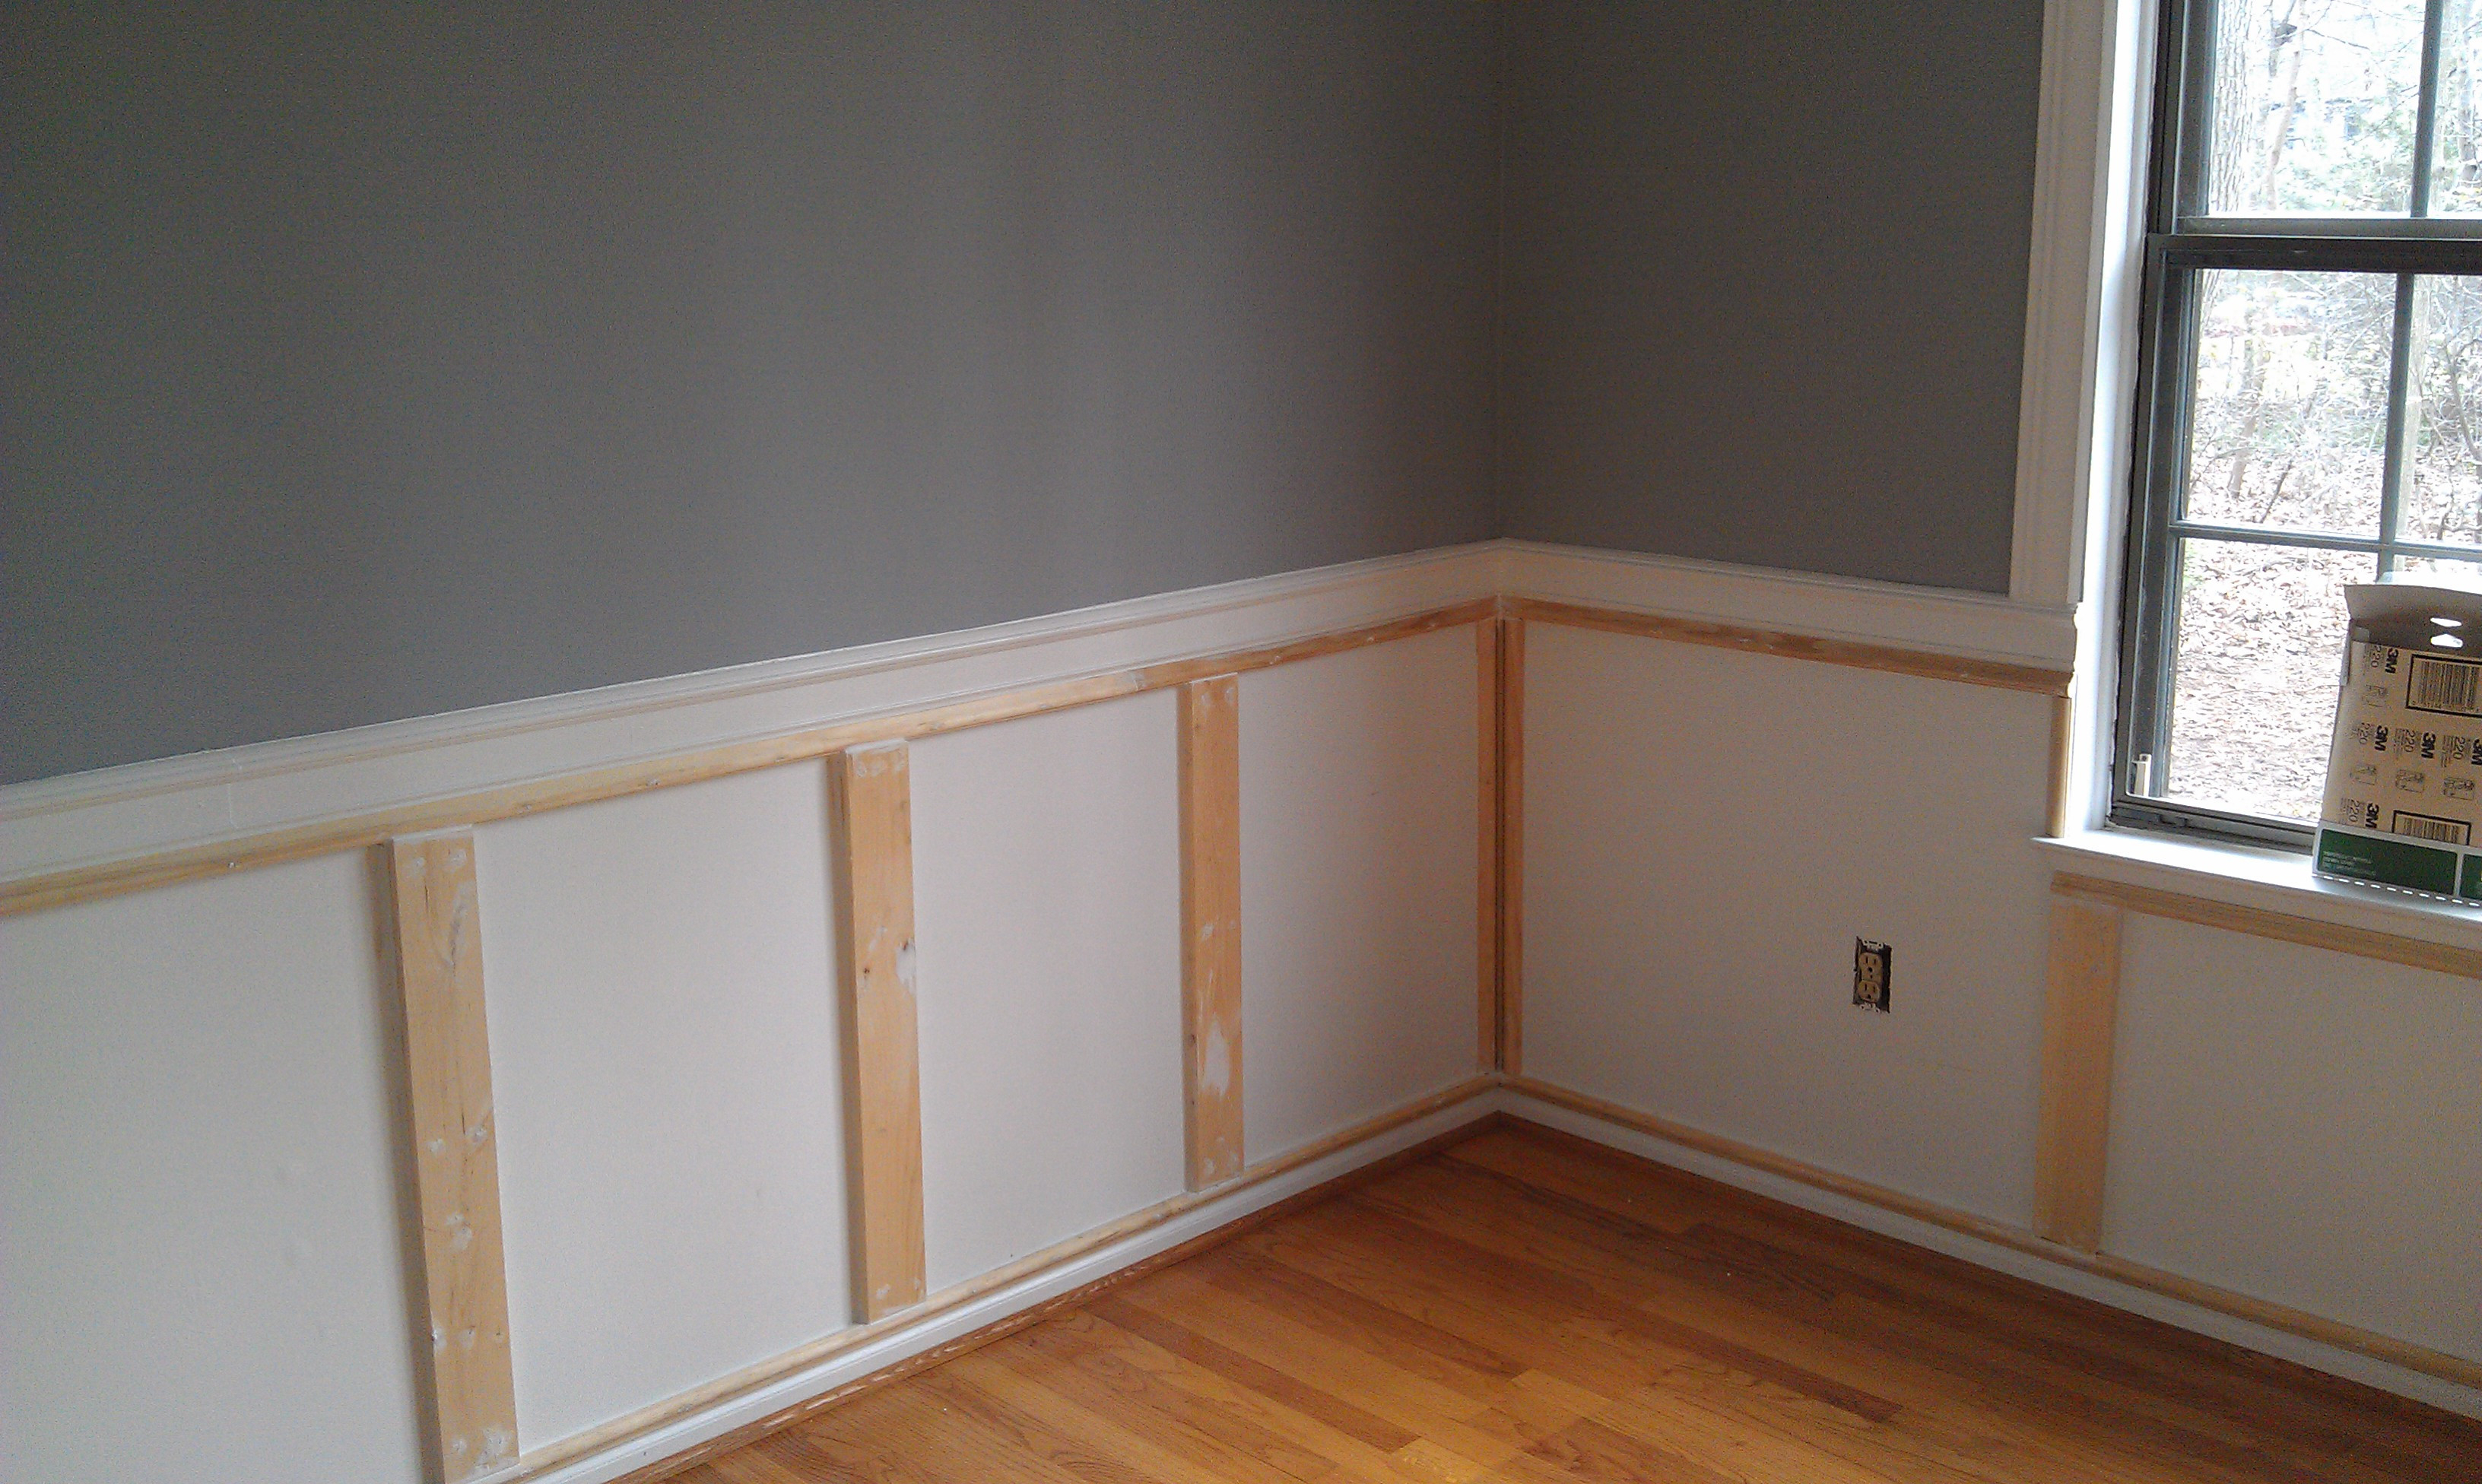 Cool Diy Beadboard Wainscoting Beautiful Collection Solutions Wainscoting within Diy Beadboard